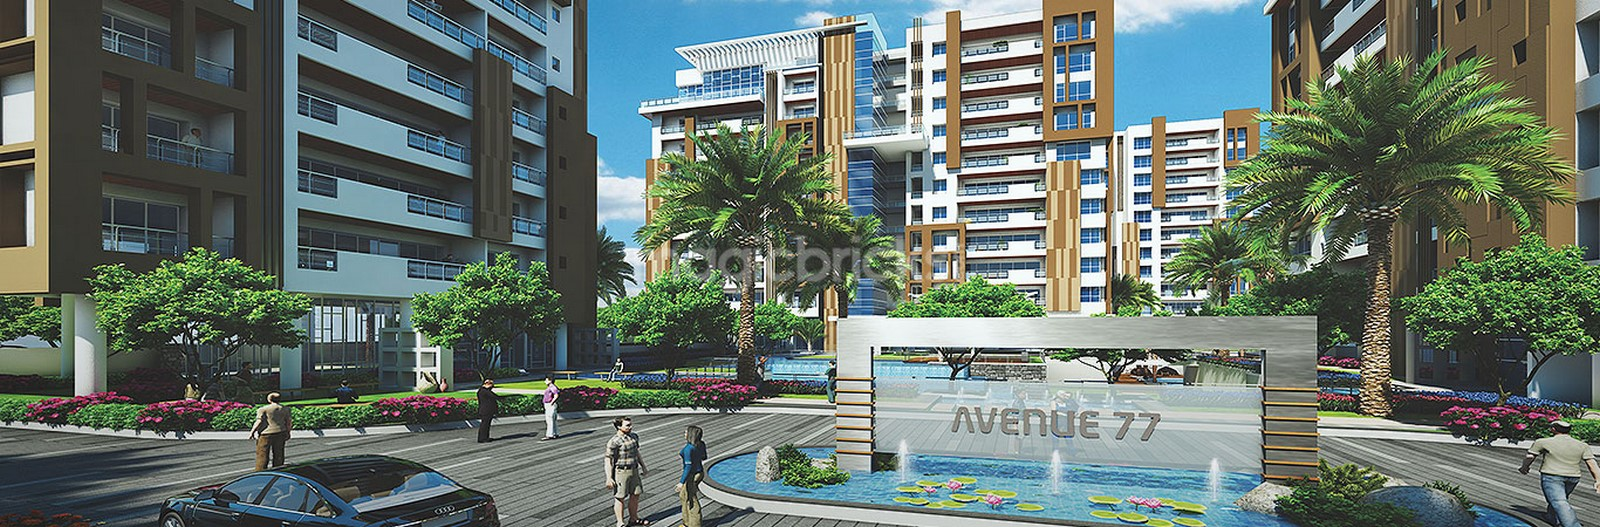 Avenue 77 in Surat by Hafeez Contractor - Sheet2